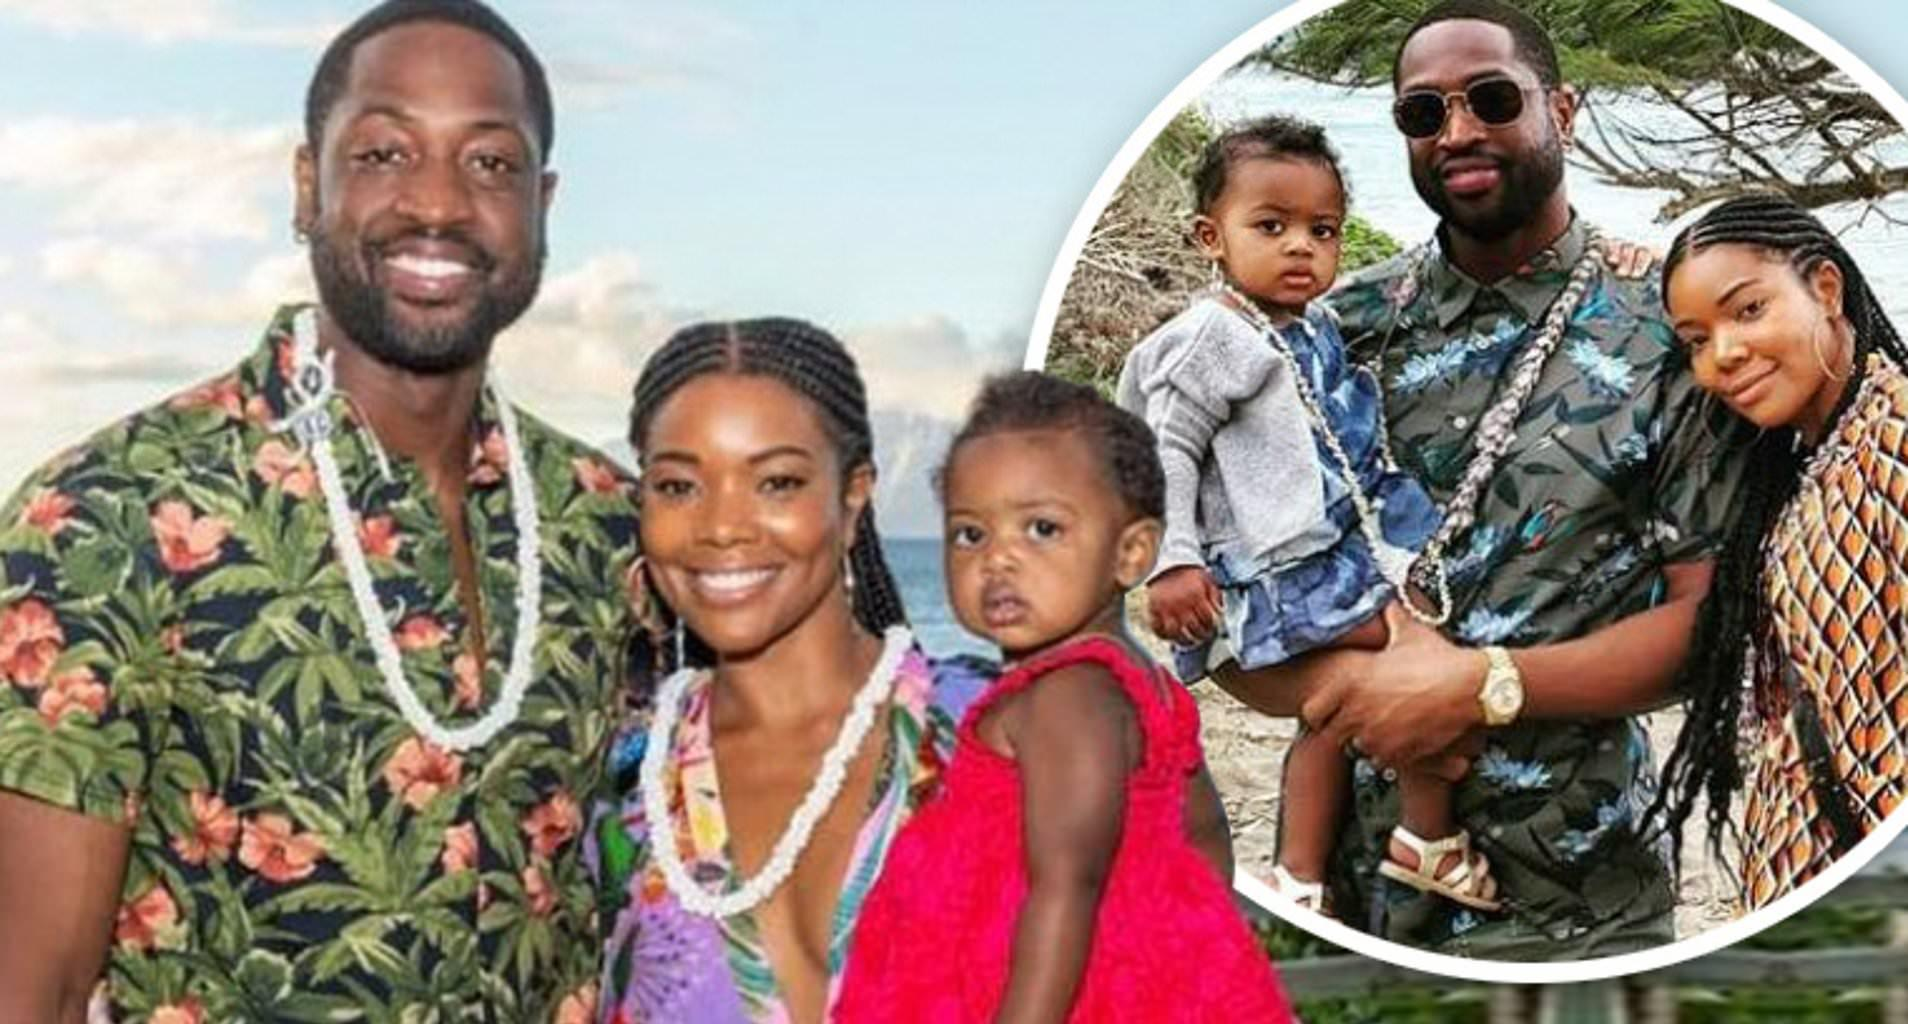 Gabrielle Union And Kaavia James Are Twinning In These Pics - See Their Sweet Matching Outfits